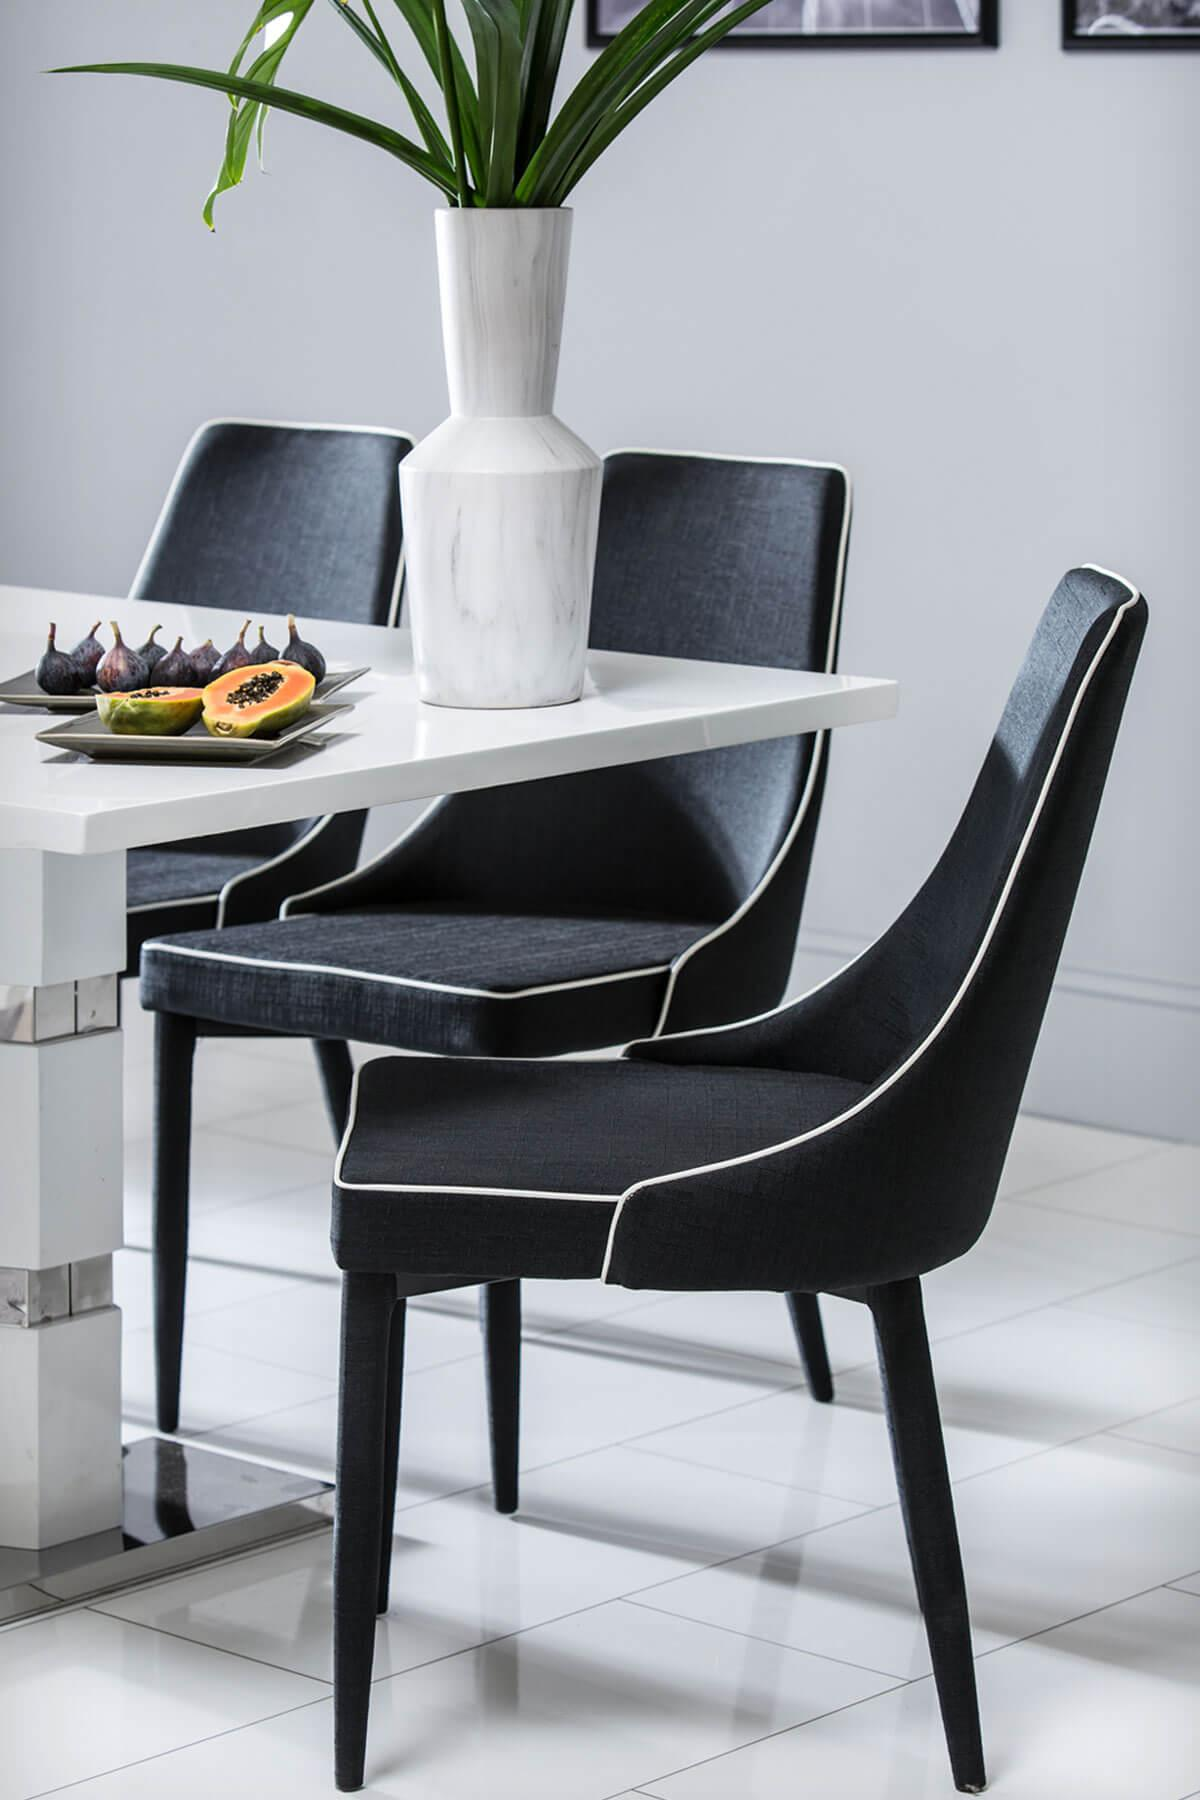 Komoro White High Gloss Dining Table - with 4 Modena Black Chairs